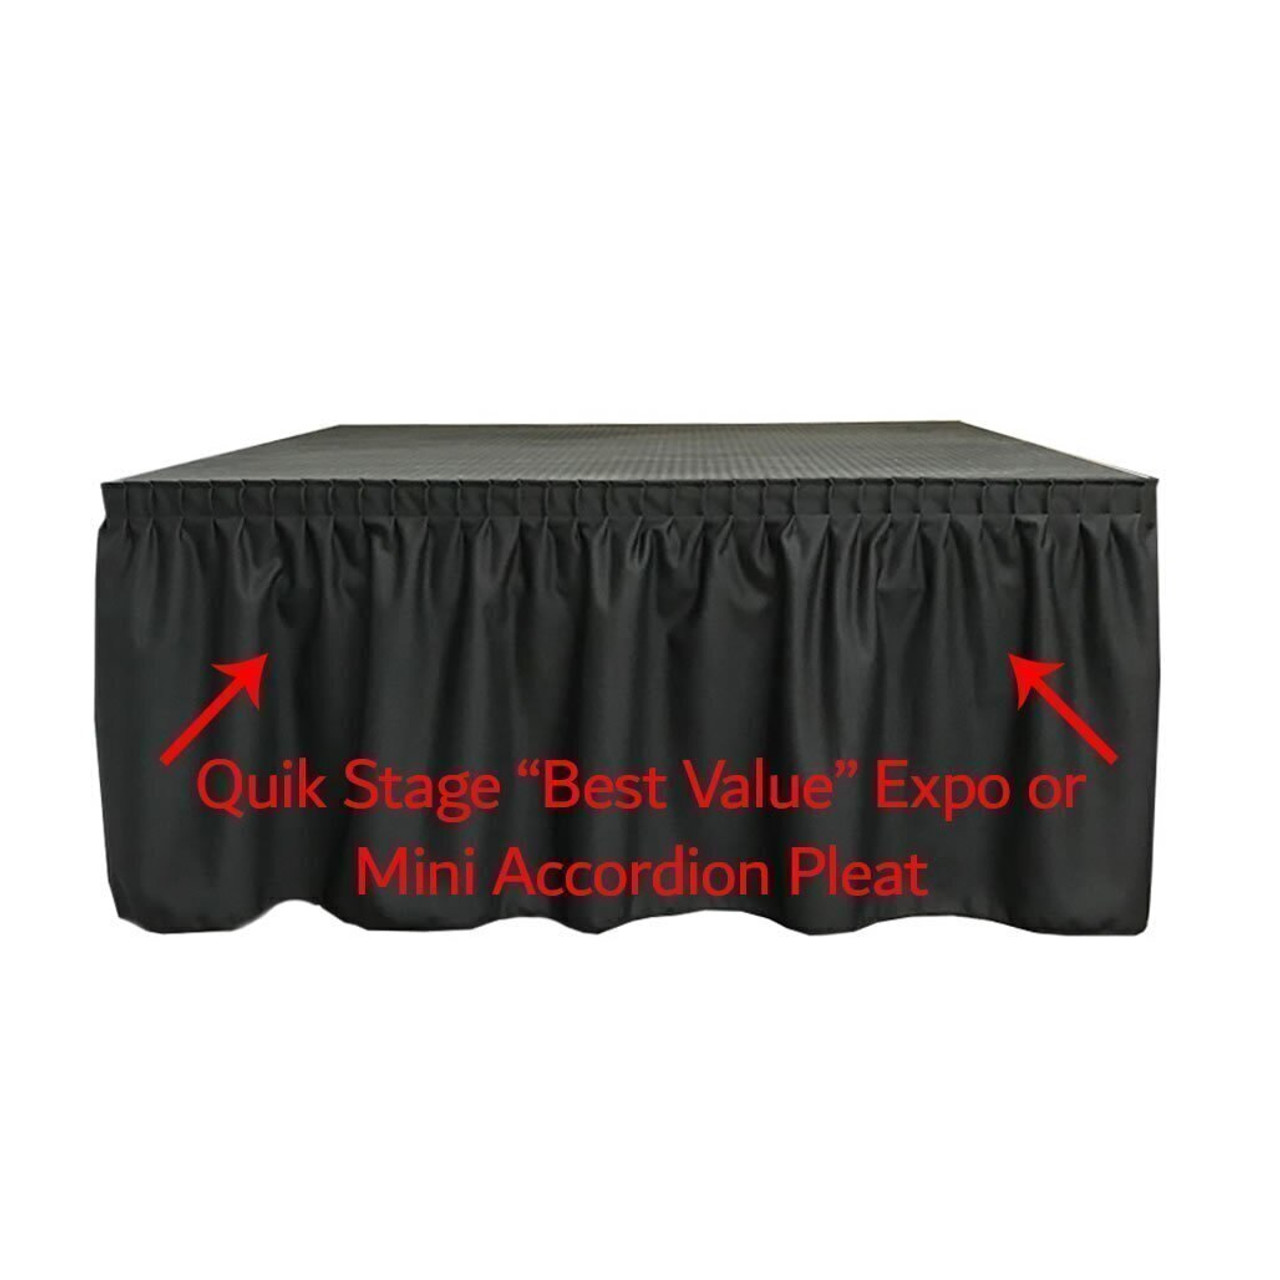 High Quality Quik Stage 4' x 32' High Portable Stage Package with Black Polyvinyl Non-Skid Surface. Additional Heights and Surfaces Available - Best Value Expo Pleat Stage Skirting